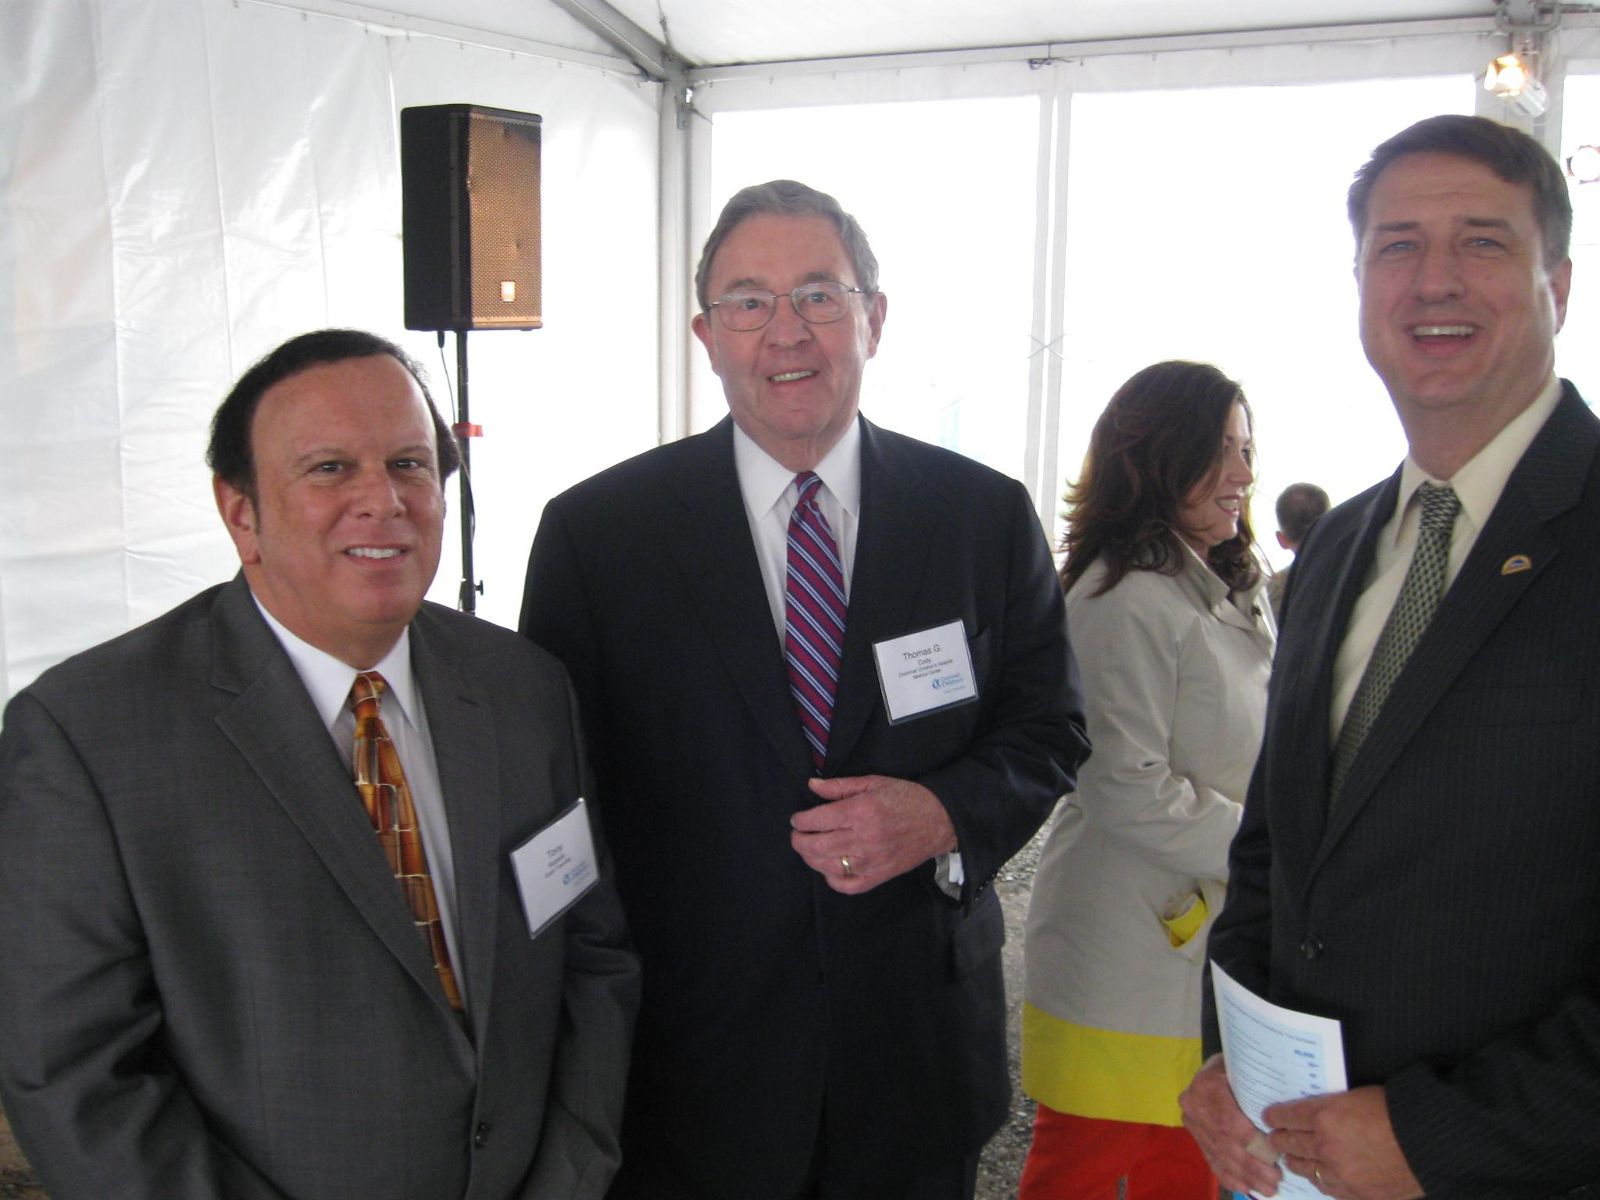 Image of Trustee Tony Rosiello with Thomas Cody, Chairman of the Board of Children's Hospital and Hamilton County Commissioner, Chris Monzel